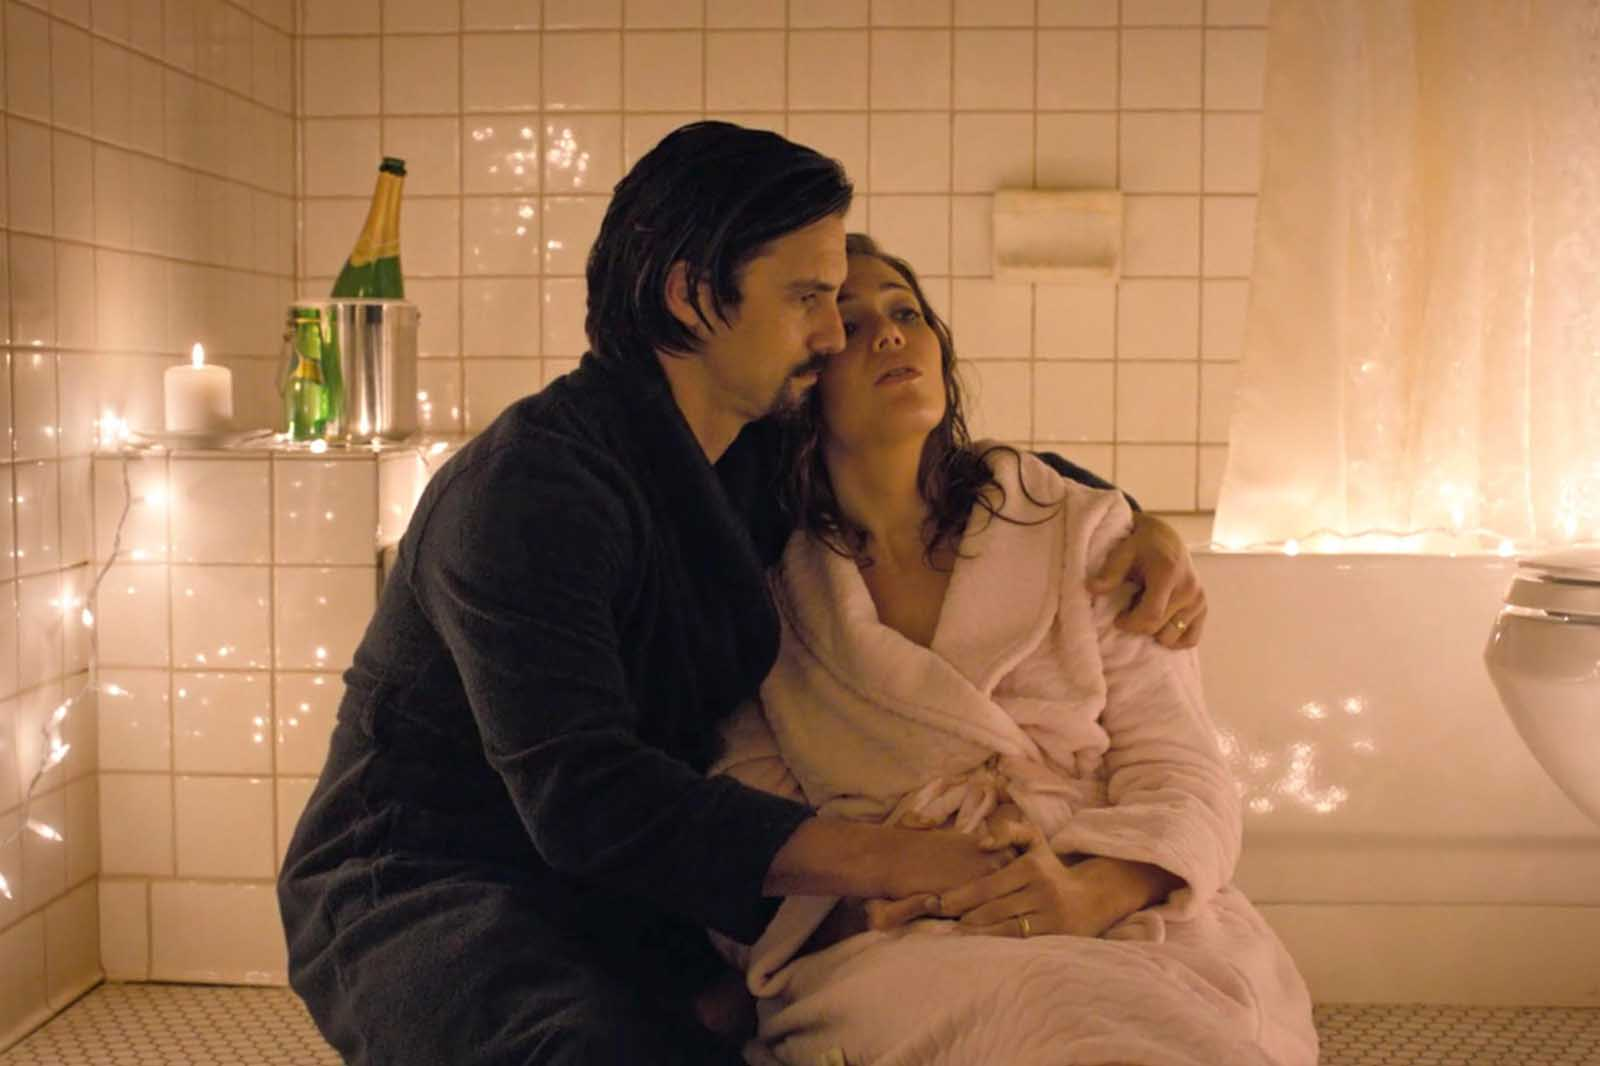 'This is Us' creator Dan Fogelman made a job about what celebrity sex scenes on TV look like now, but he unintentionally showed us what he's doing.